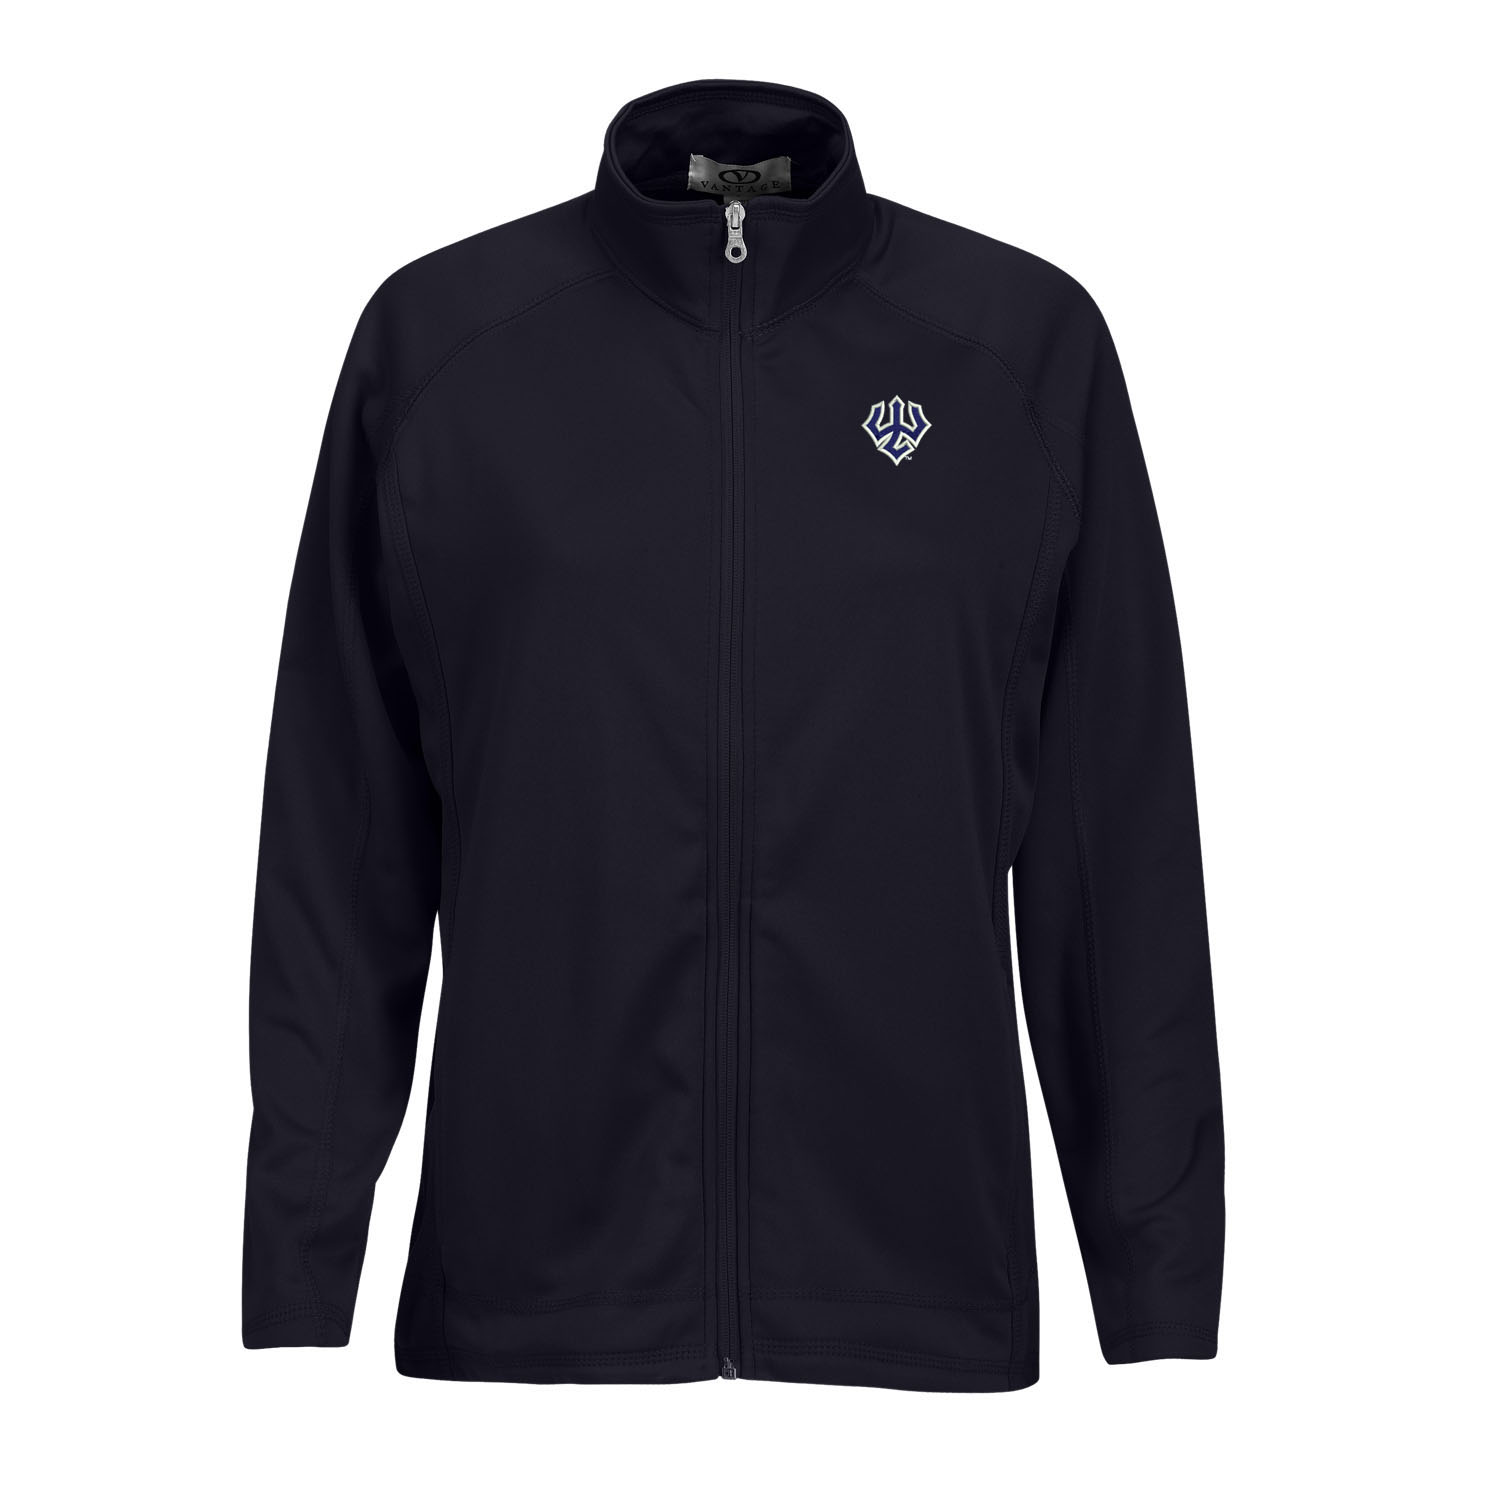 Full Zip Fleece Jacket, Navy